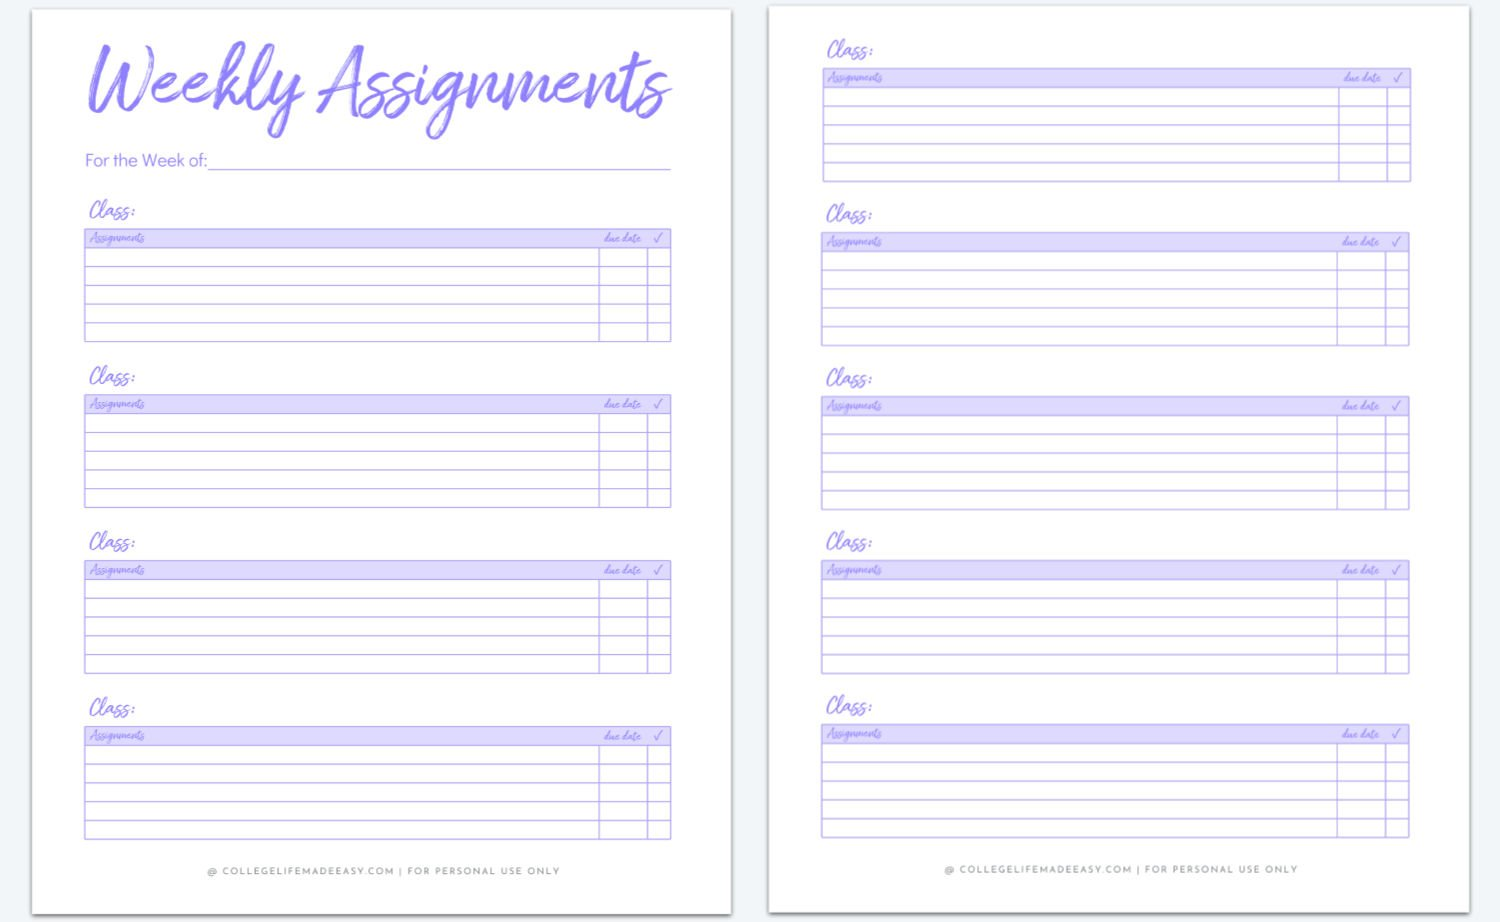 purple assignment tracker printable for college students with two pages